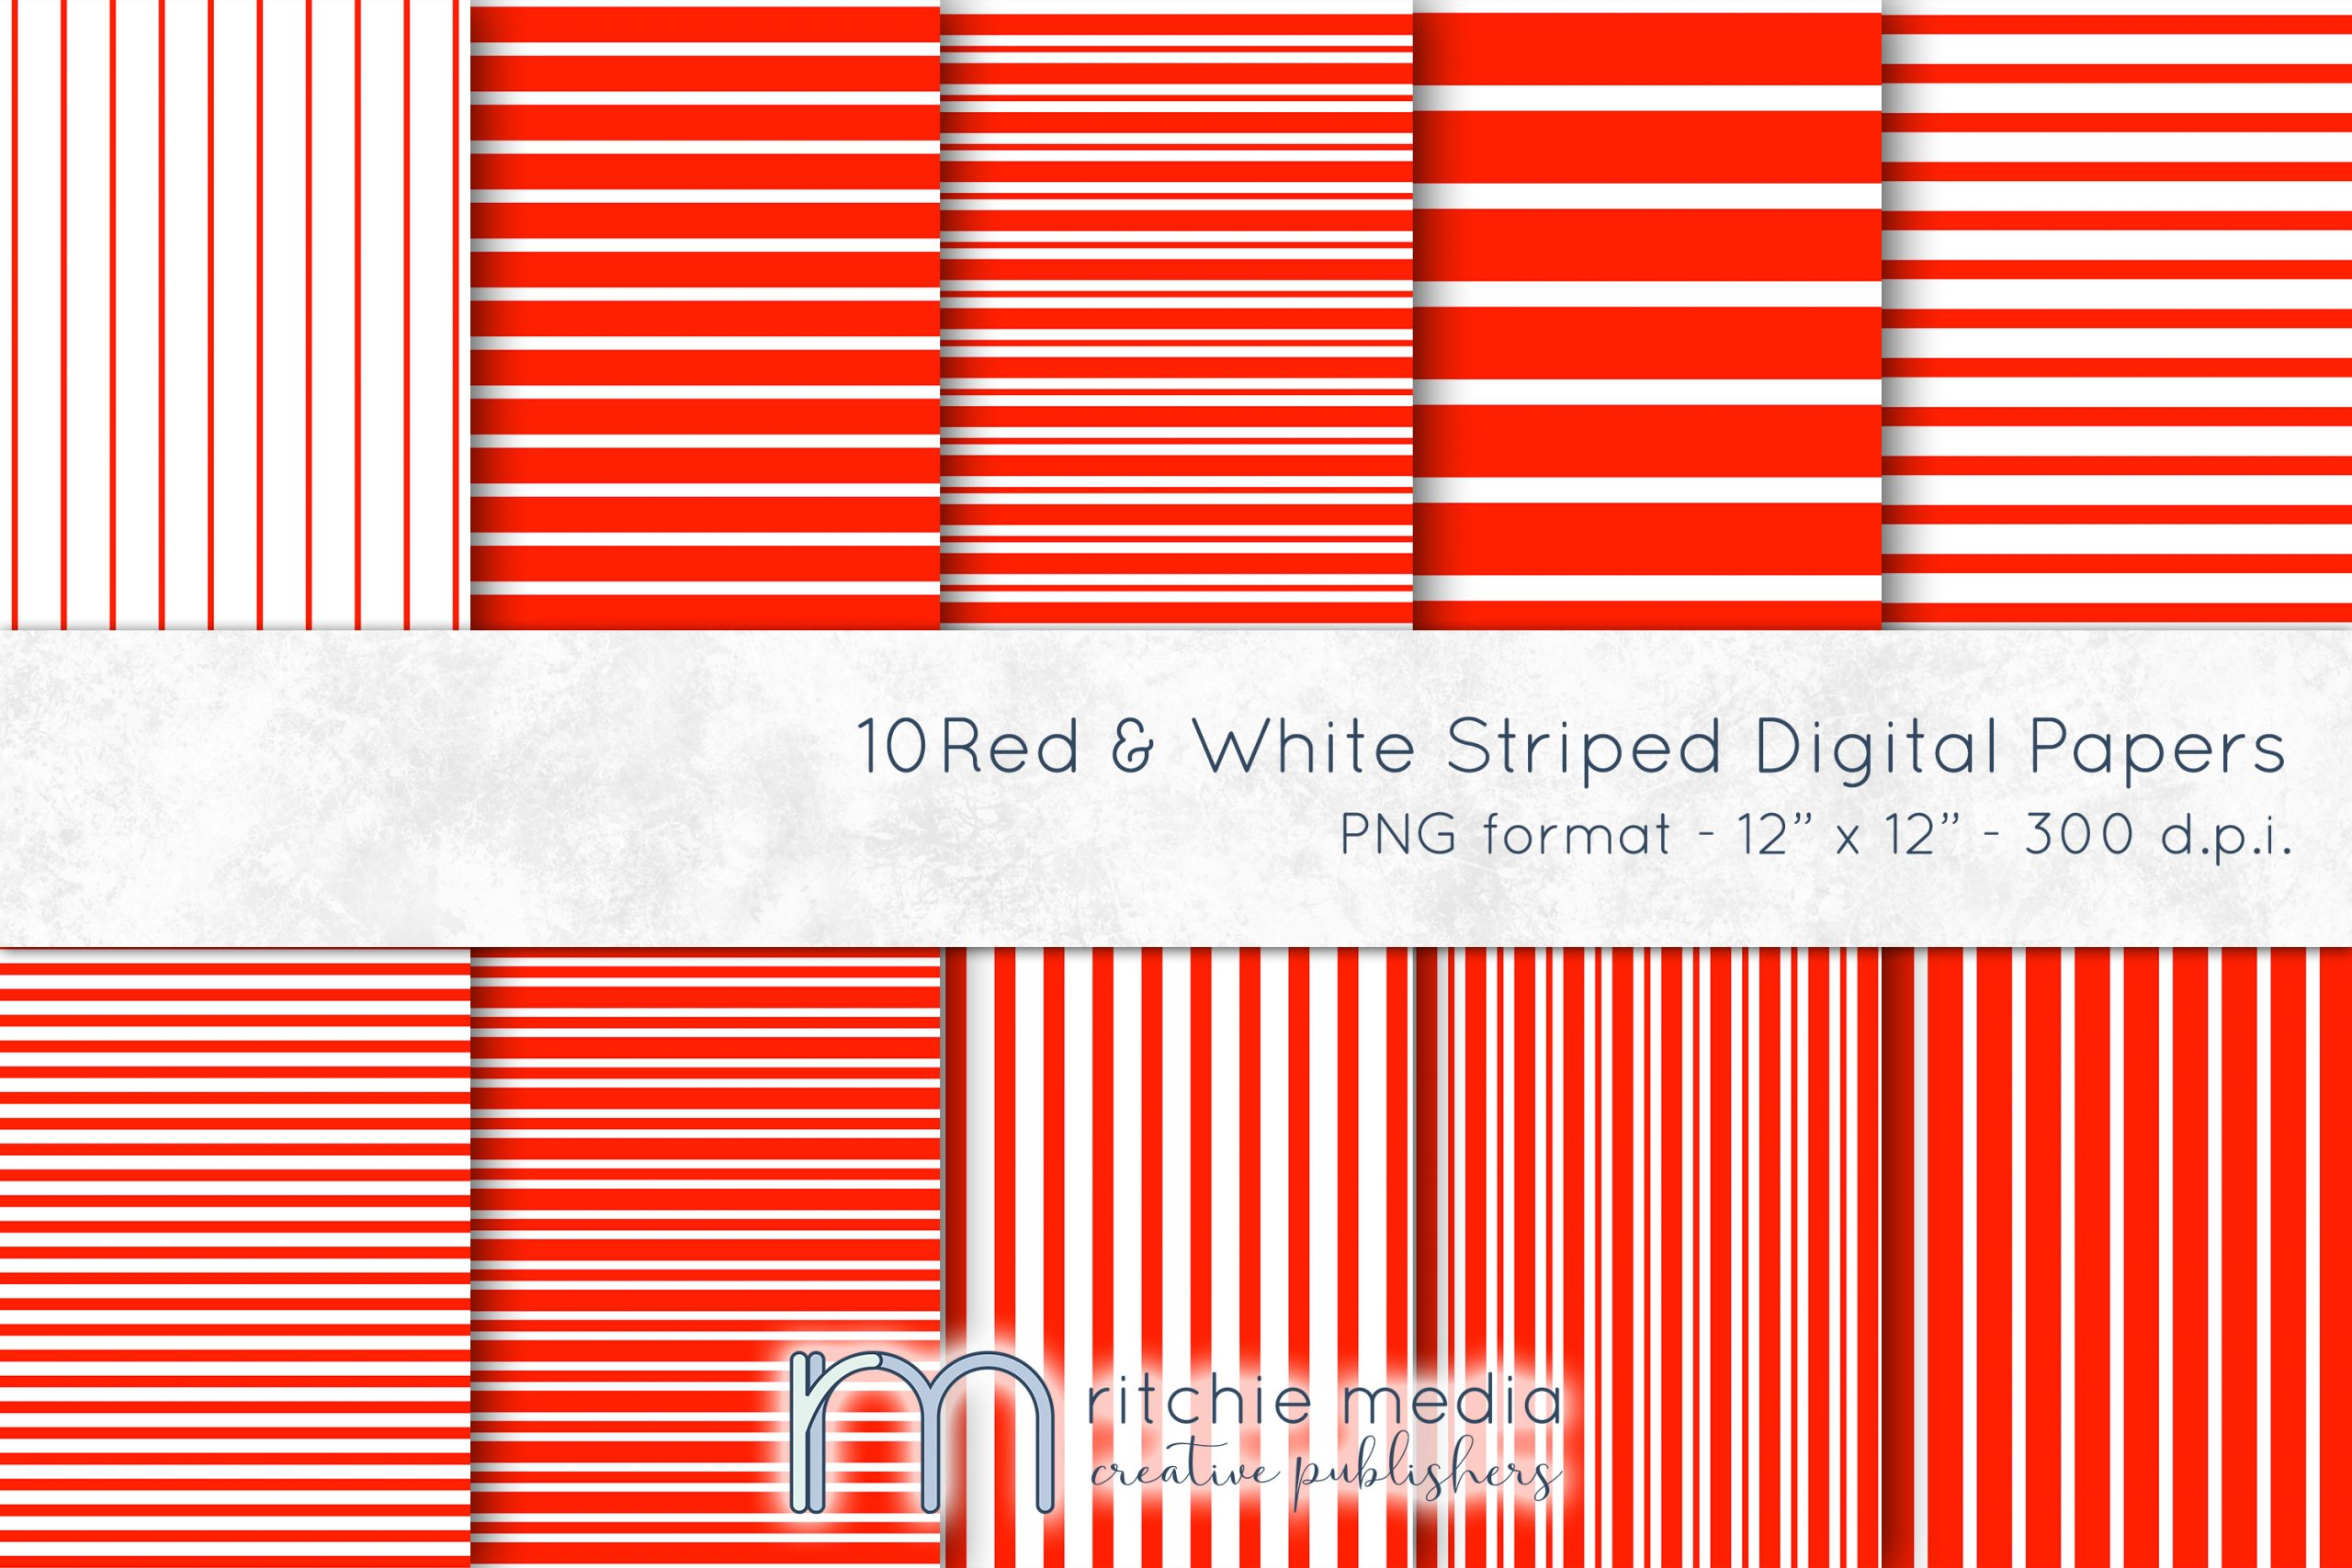 red and white striped digital papers